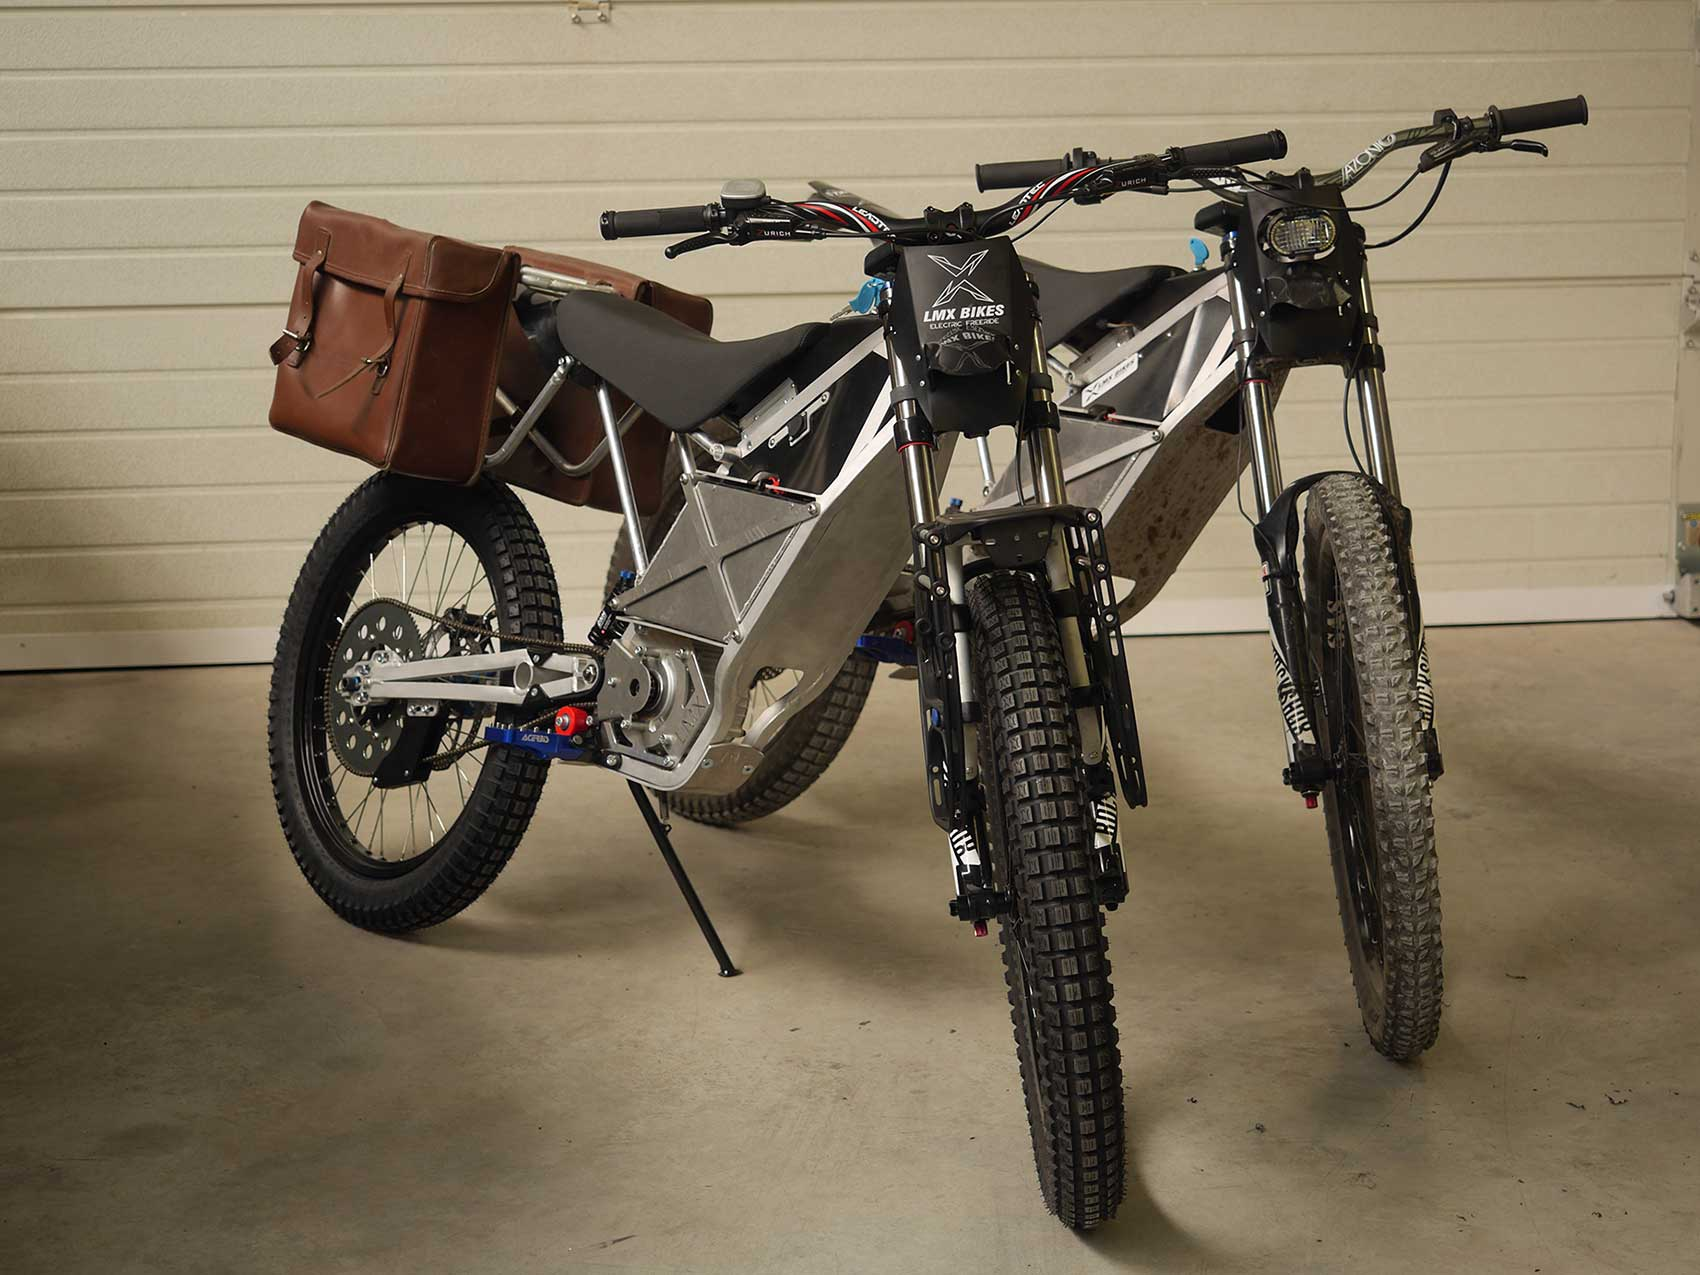 Electric Freeride Motorcycle Lmx 161 H Indiegogo Campaign